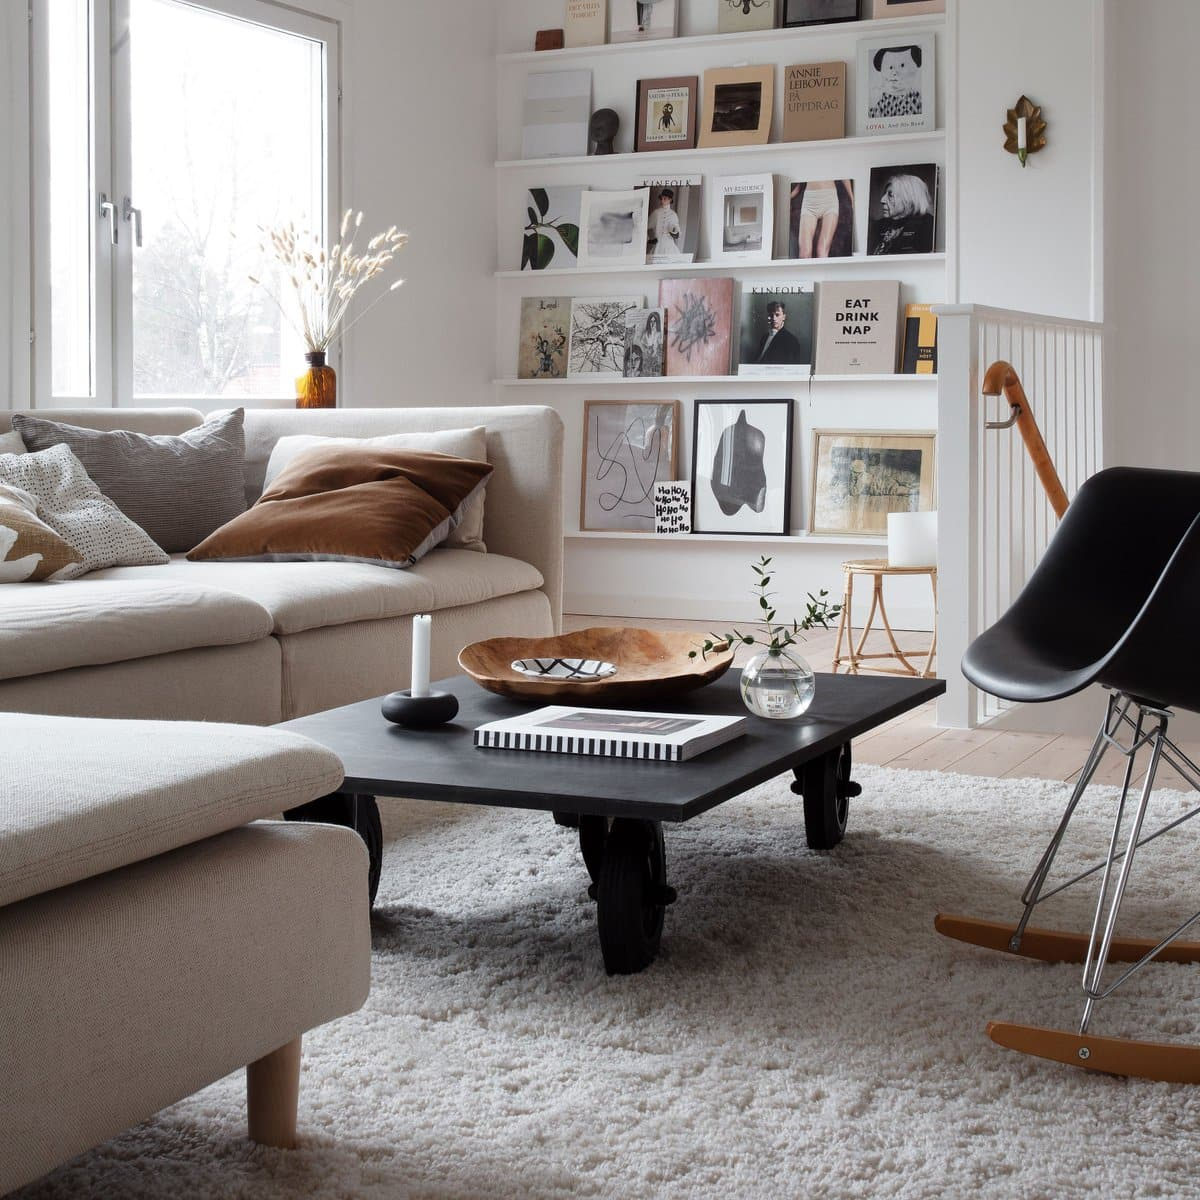 neutral living room with books on picture ledge and black coffee table